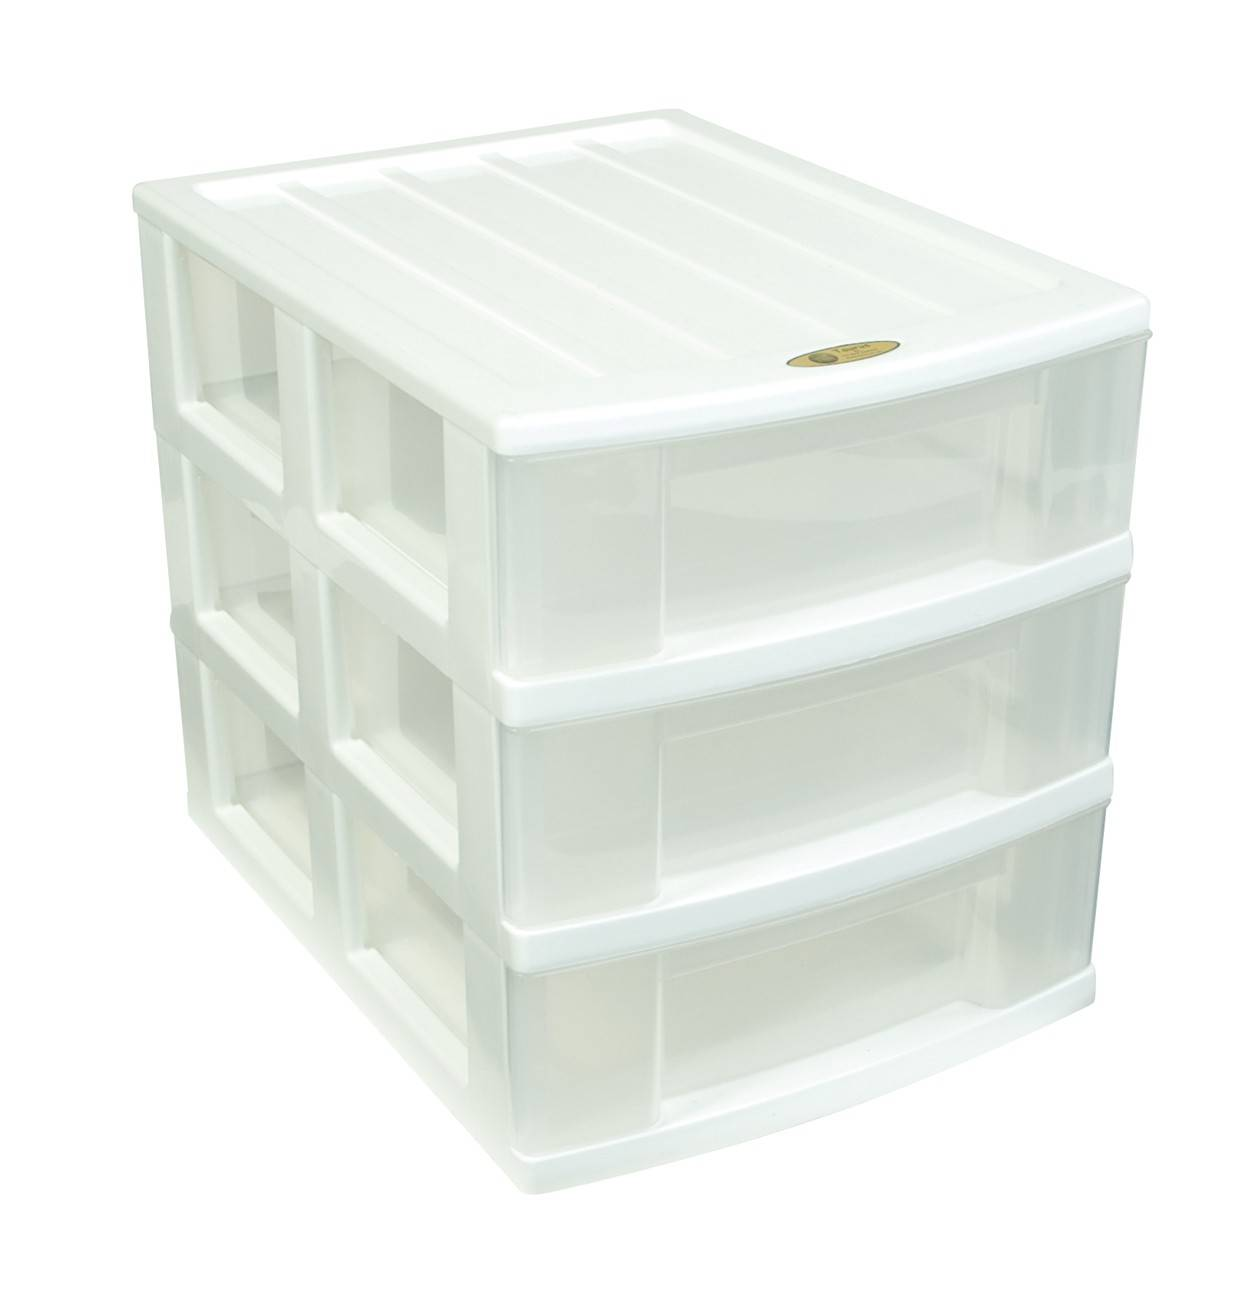 filing office drawer desktop plastic organisers desk supplies accessories drawers ryman storage